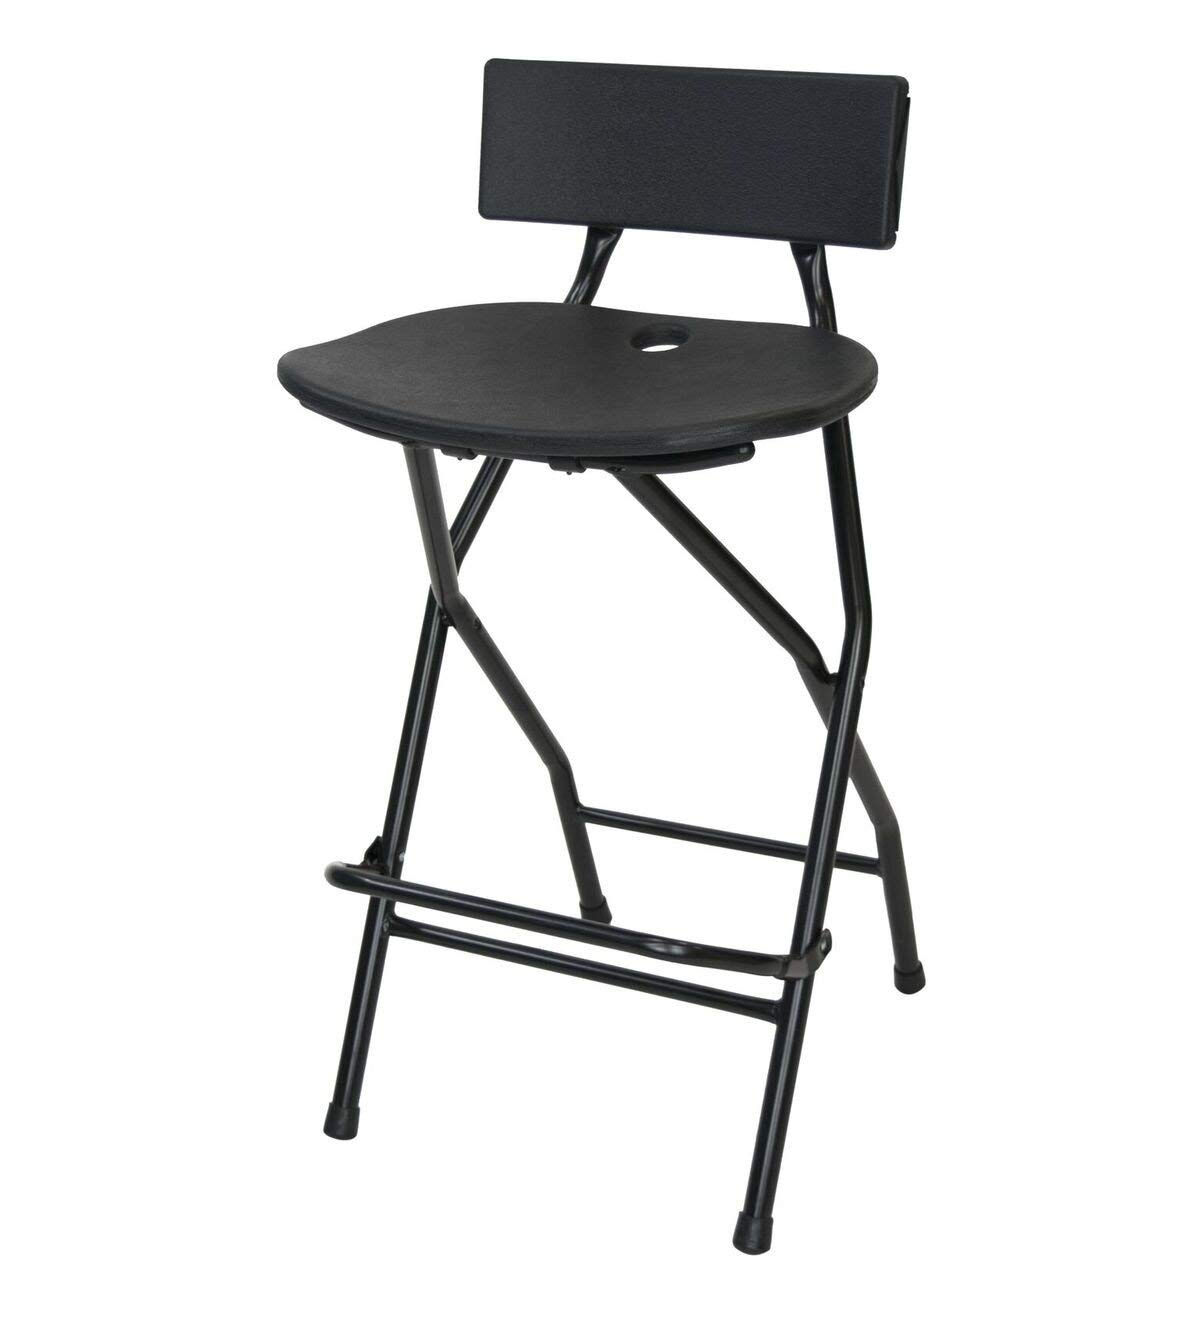 EventStable Folding Bar Stool with Backrest